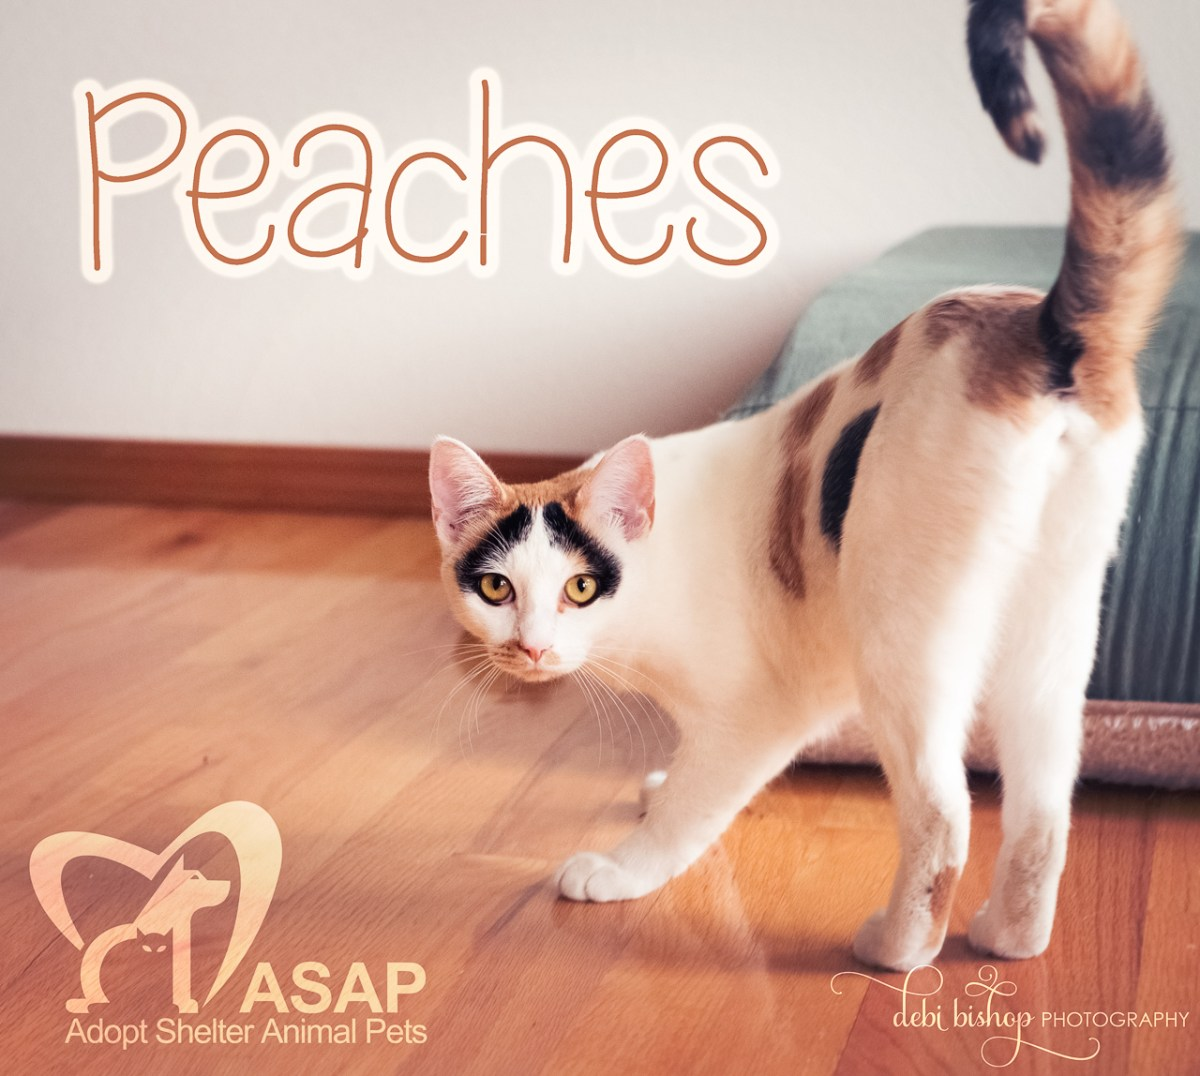 Peaches the Cat Up for Adoption